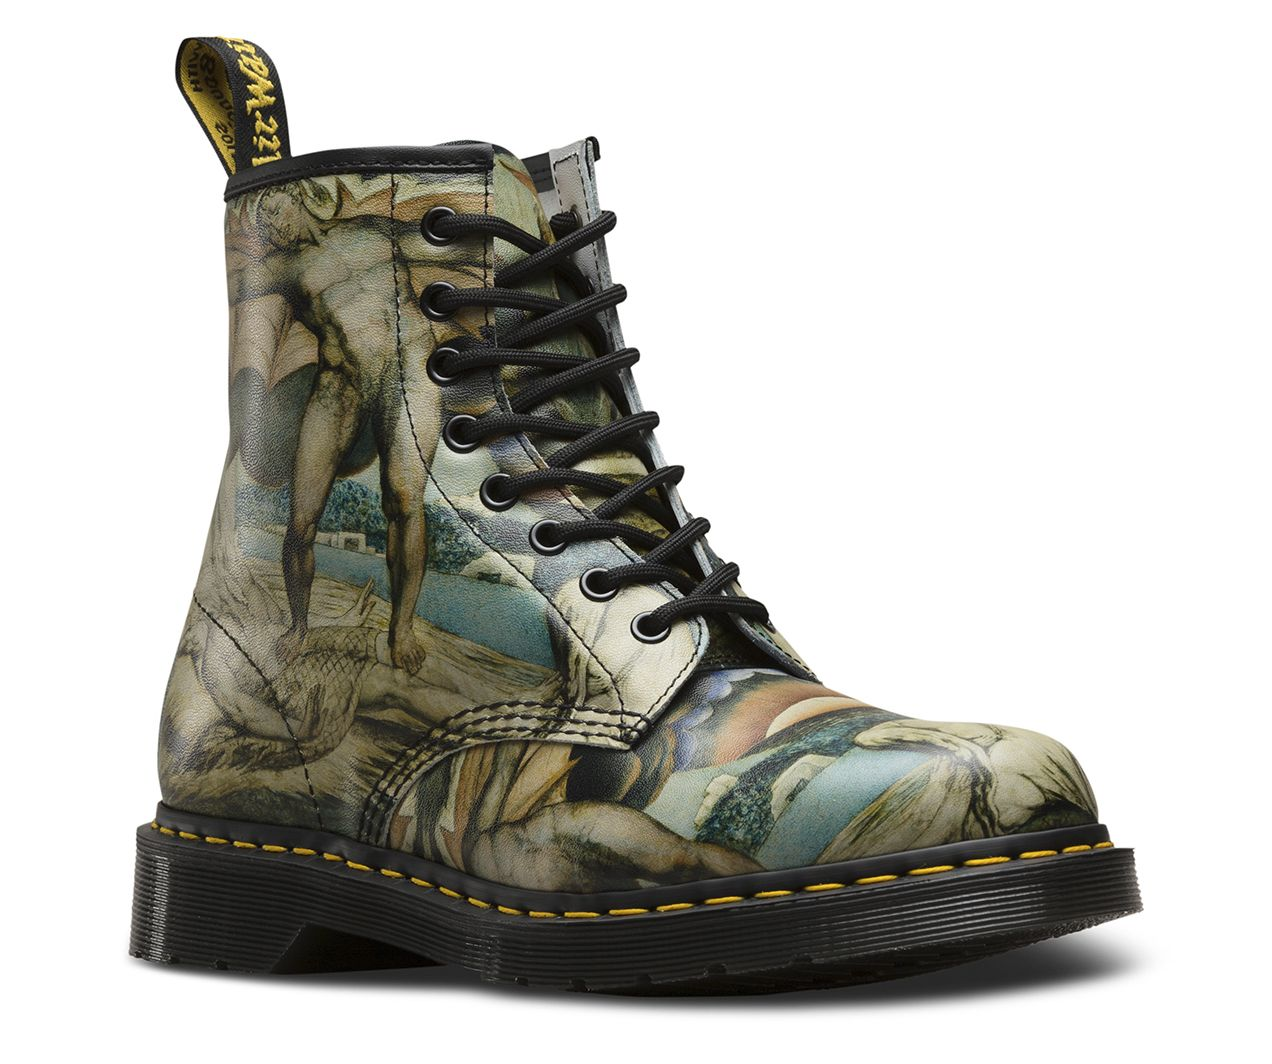 DR MARTENS William Blake 1460